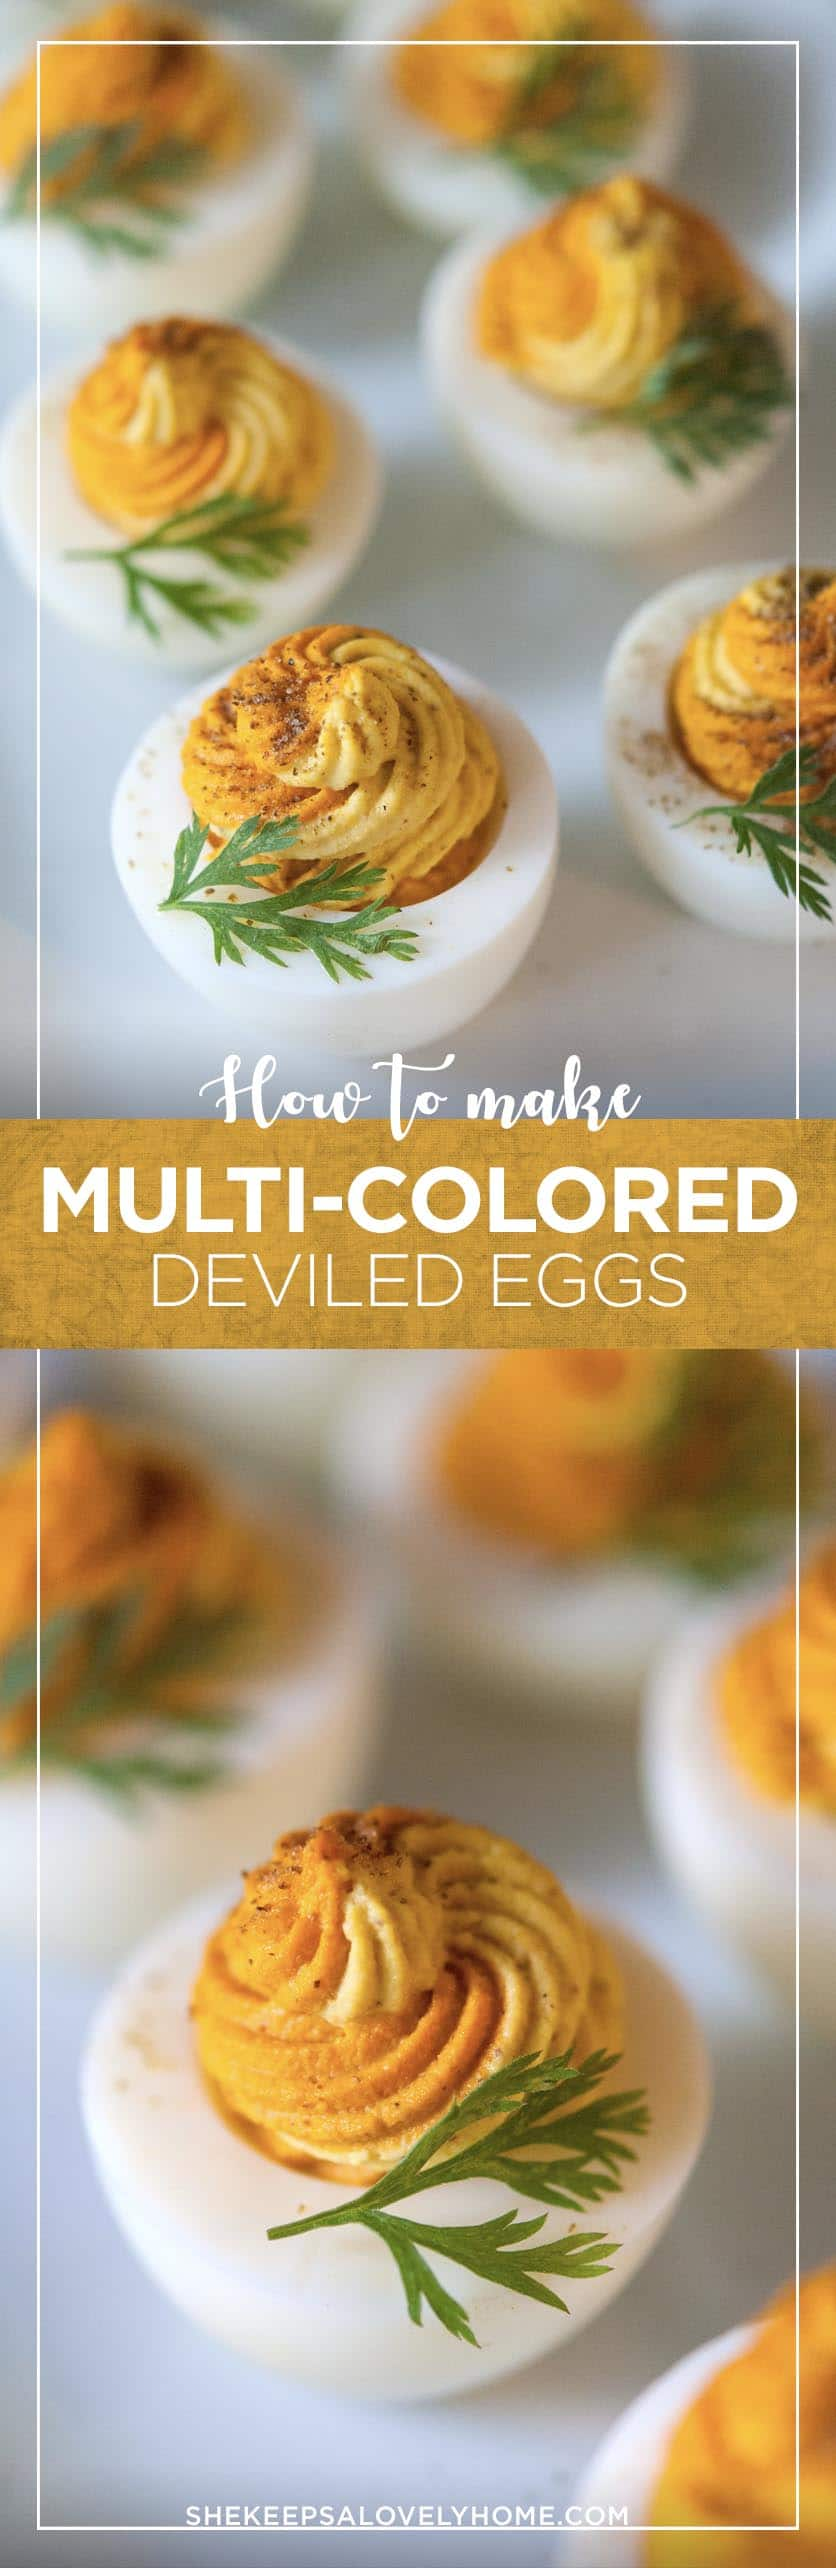 Multi-colored deviled eggs are so simple to create and look so pretty! I'll show you how to create these two-tone deviled eggs in just a few steps.